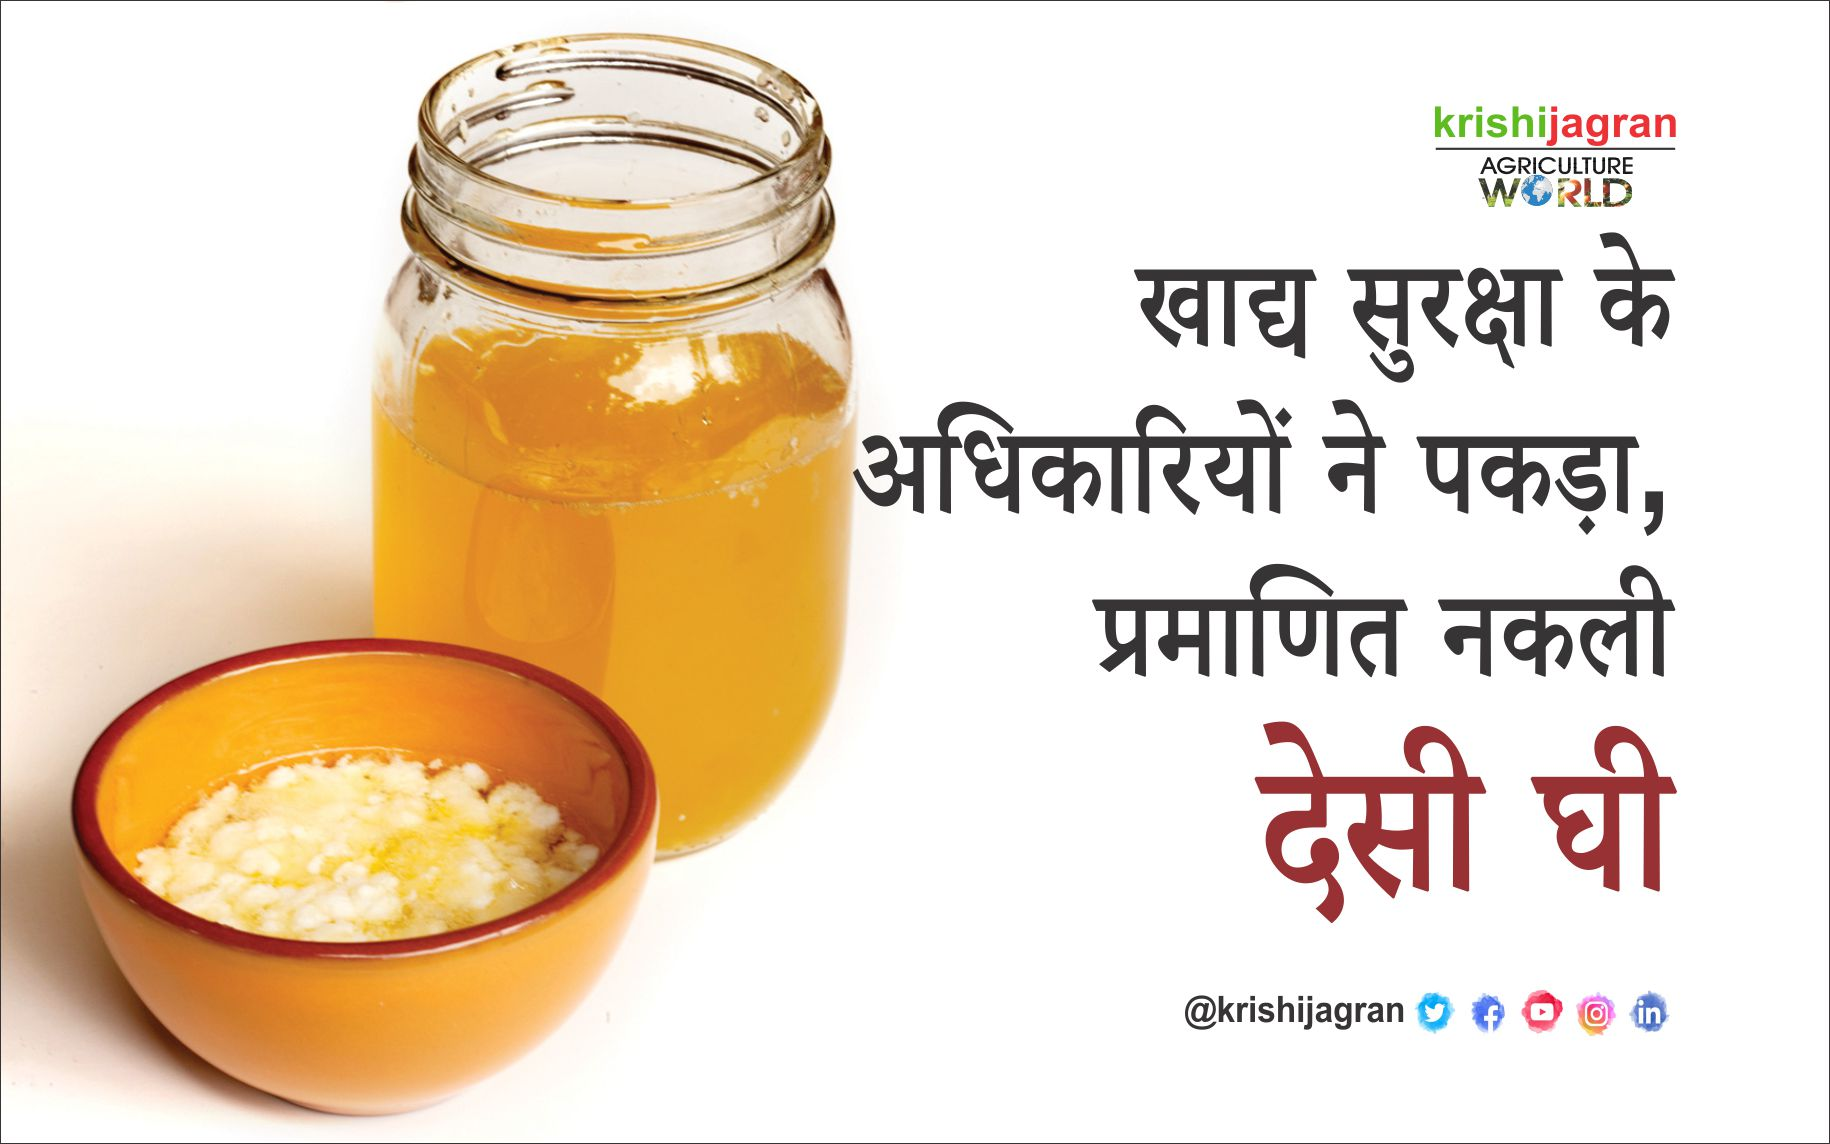 Food security officials caught, certified fake desi ghee